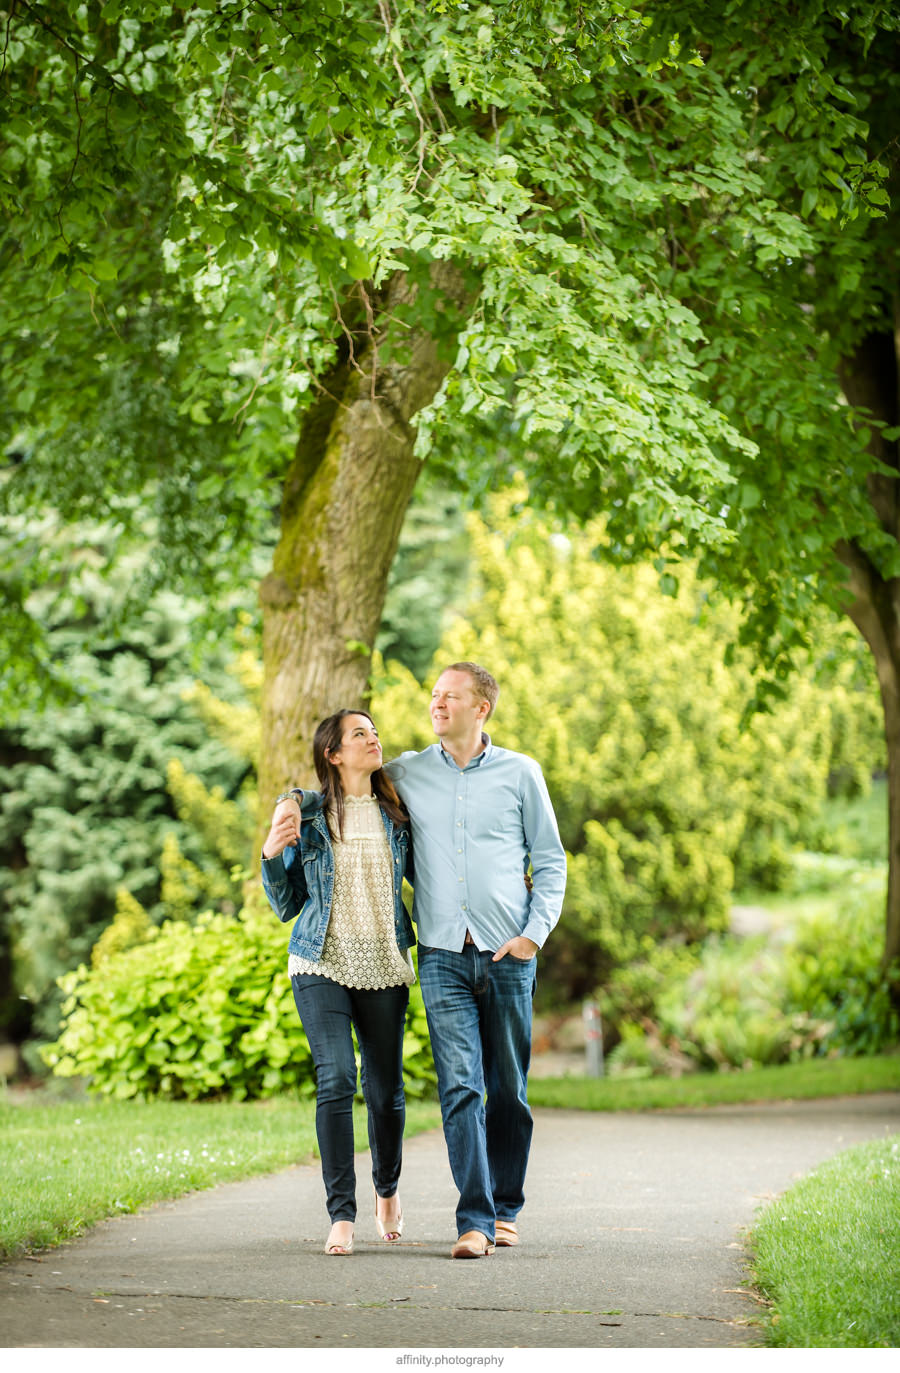 2-pathways-volunteer-park-couple-walking-together.jpg